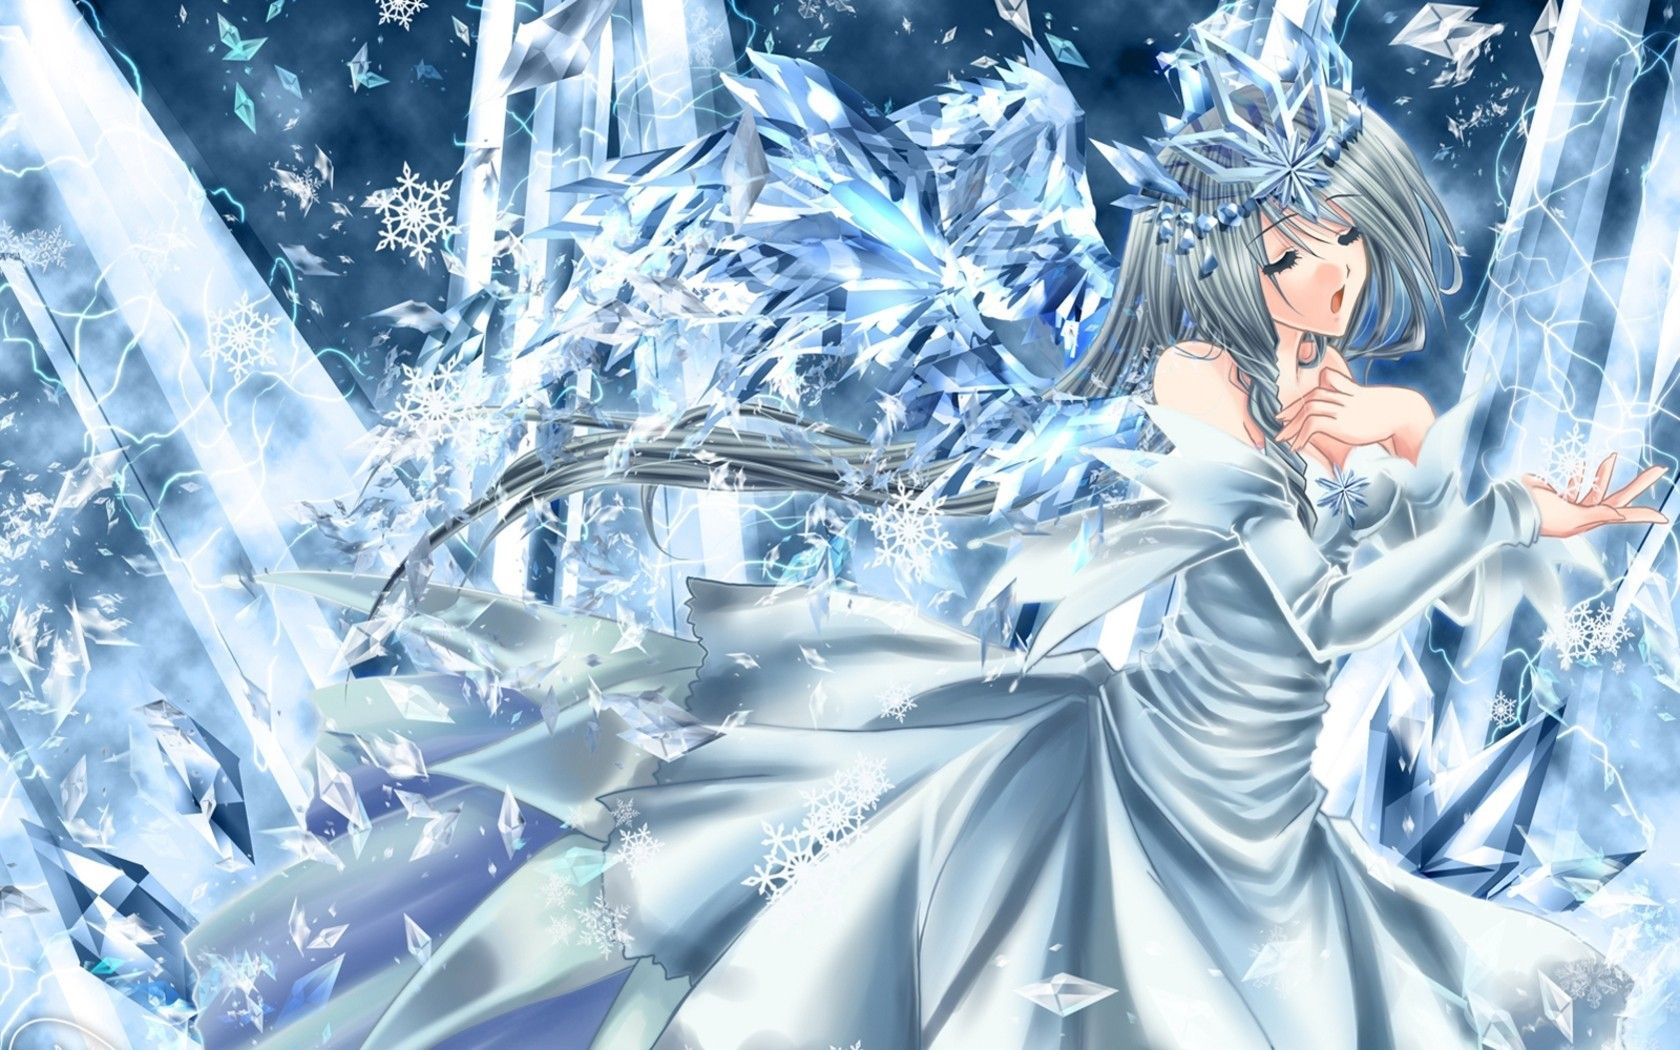 1680x1050 Anime, Girl, Winter, Cold, Dress wallpaper and background